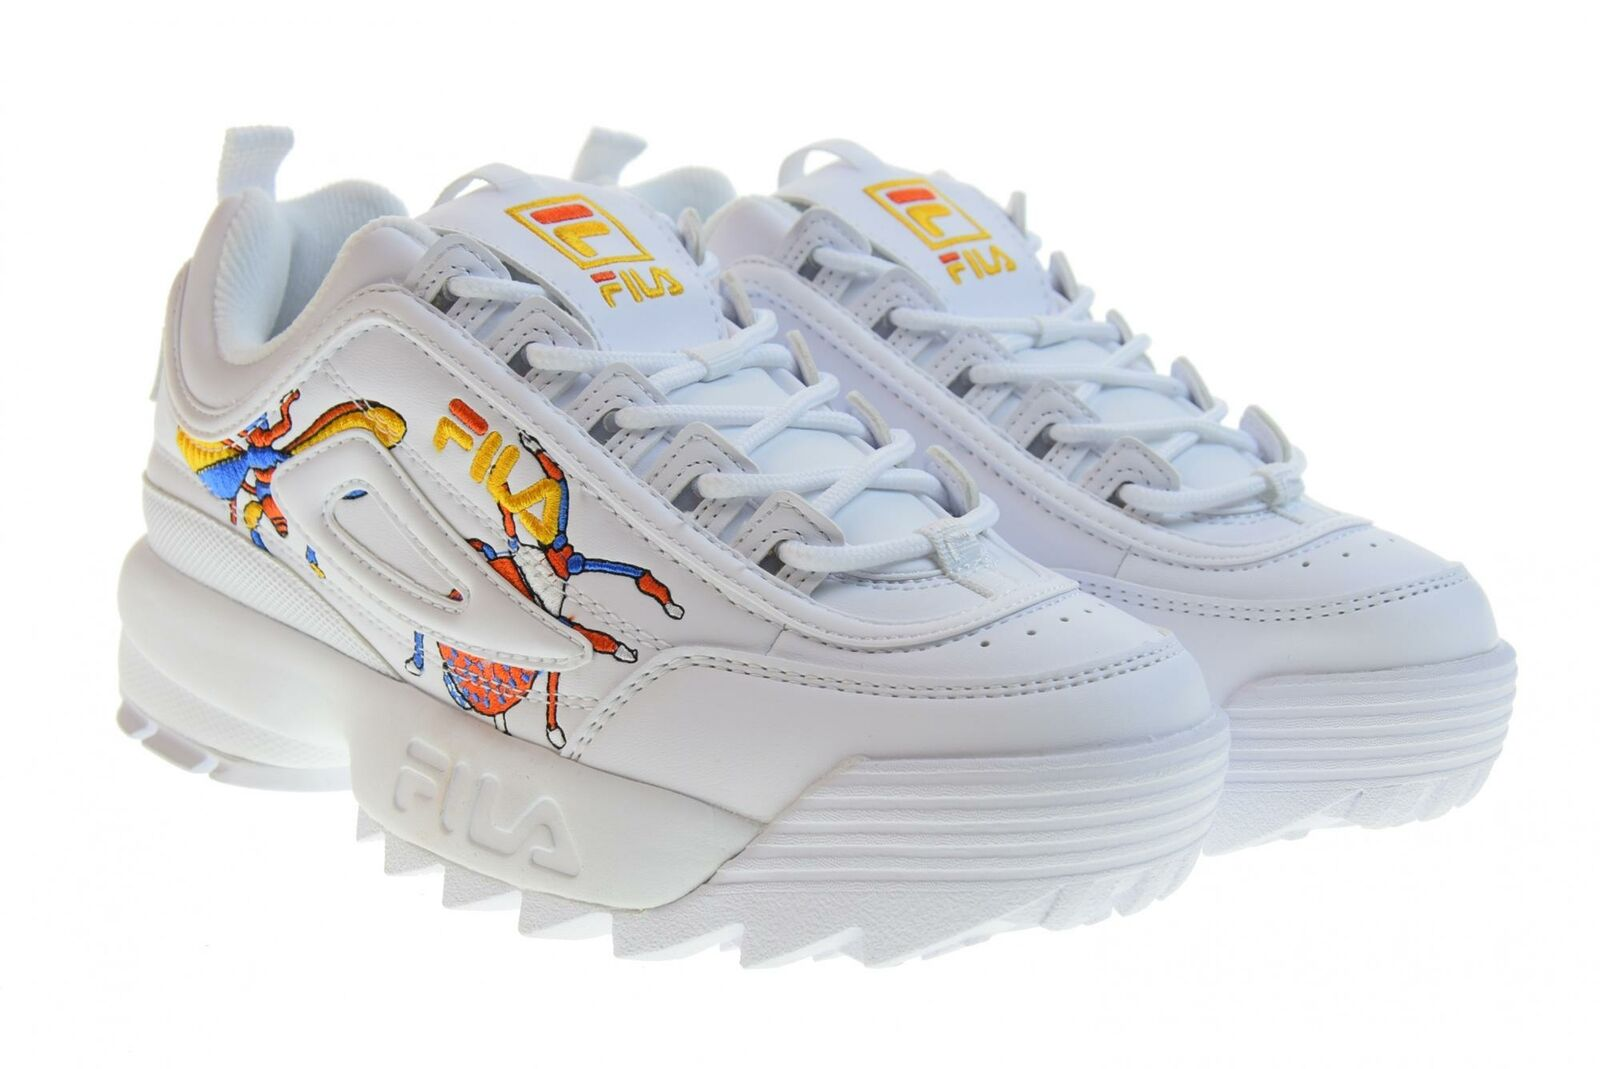 FILA P19g Womens shoes Low Trainers 1010609.90A Disrupter calabrone Low WM